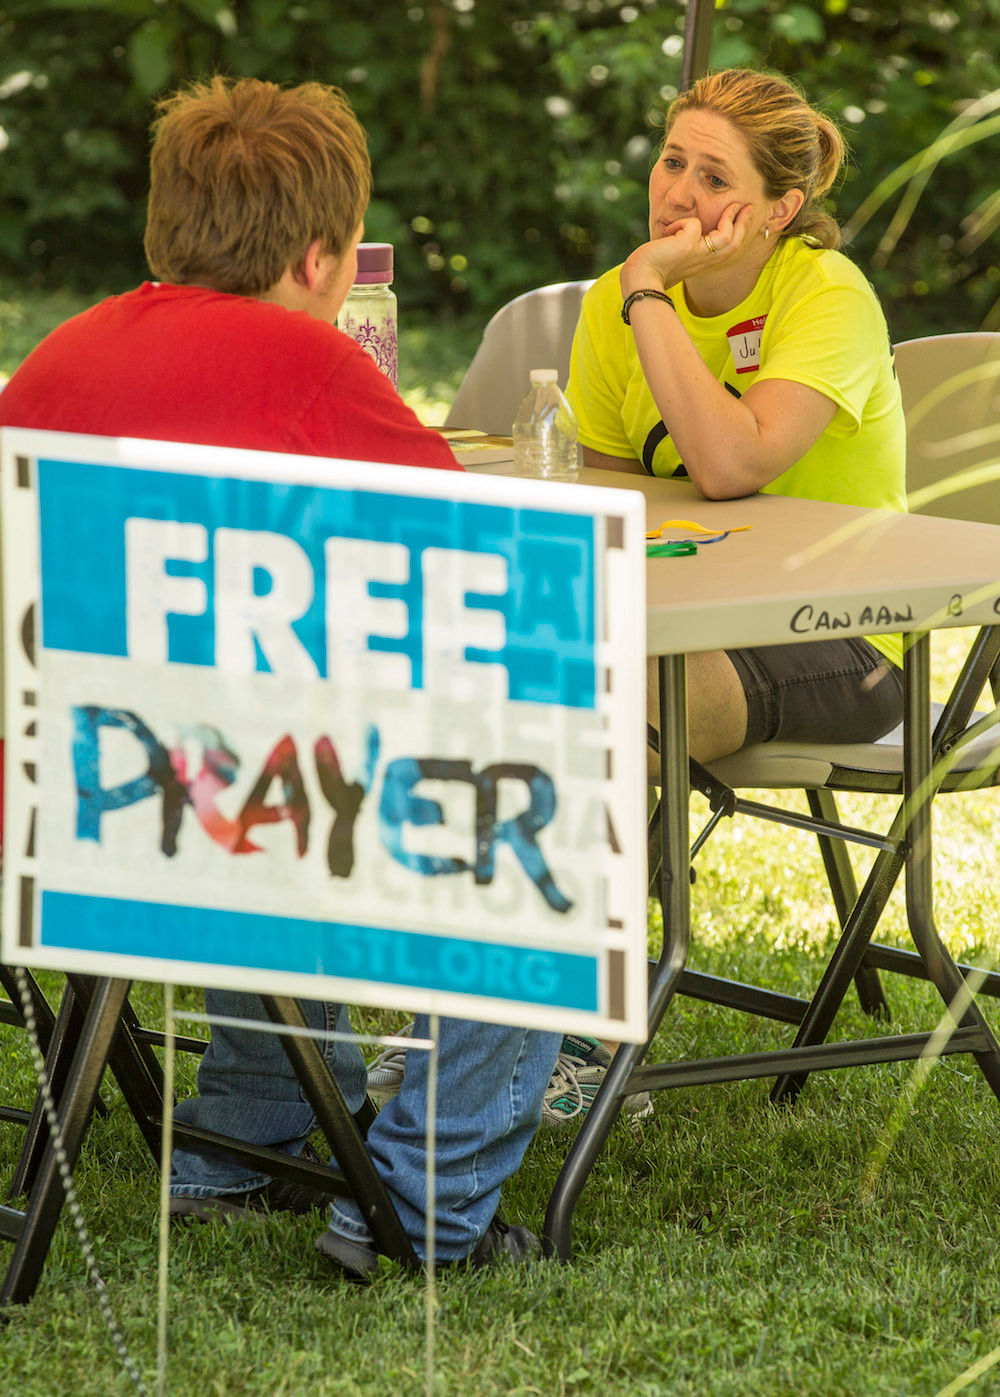 Julie DuVall of First Baptist Church in Bolivar, Mo., takes time to listen to prayer requests from a young man during a block party hosted by Canaan Baptist Church in Imperial, Mo., on Saturday, June 11. The block party was part of Crossover St. Louis 2016, held prior to the annual meeting of the Southern Baptist Convention June 14-15 at America's Center in St. Louis. (Photo courtesy Chris Carter)